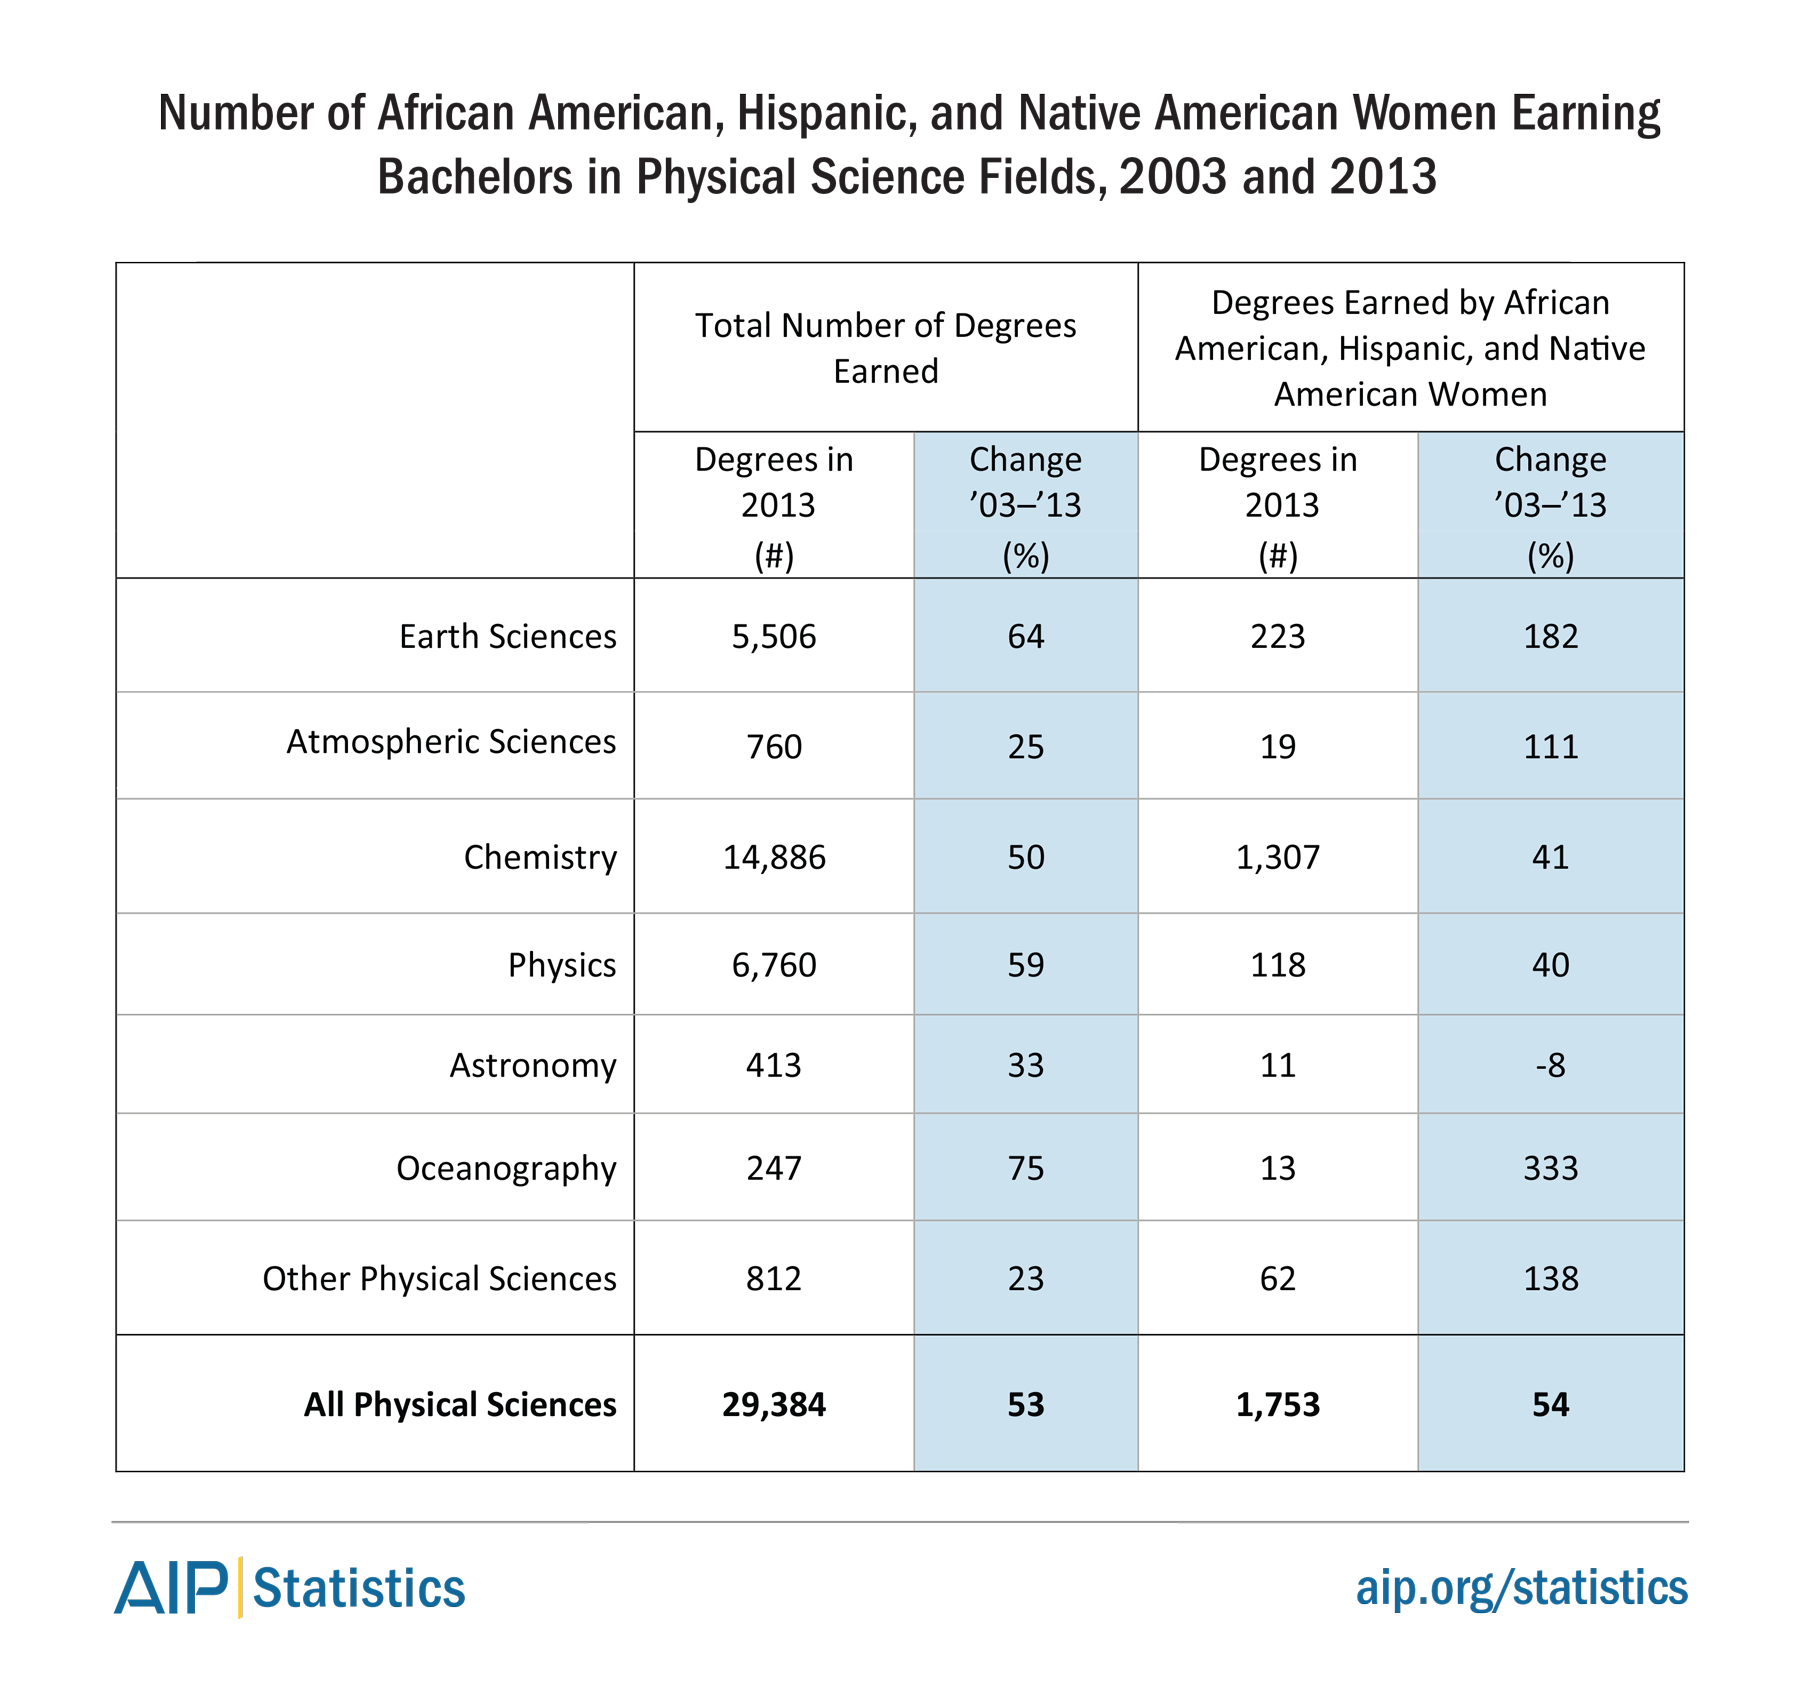 Number of African American, Hispanic, and Native American Women Earning Bachelors in Physical Science Fields, 2003 and 2013